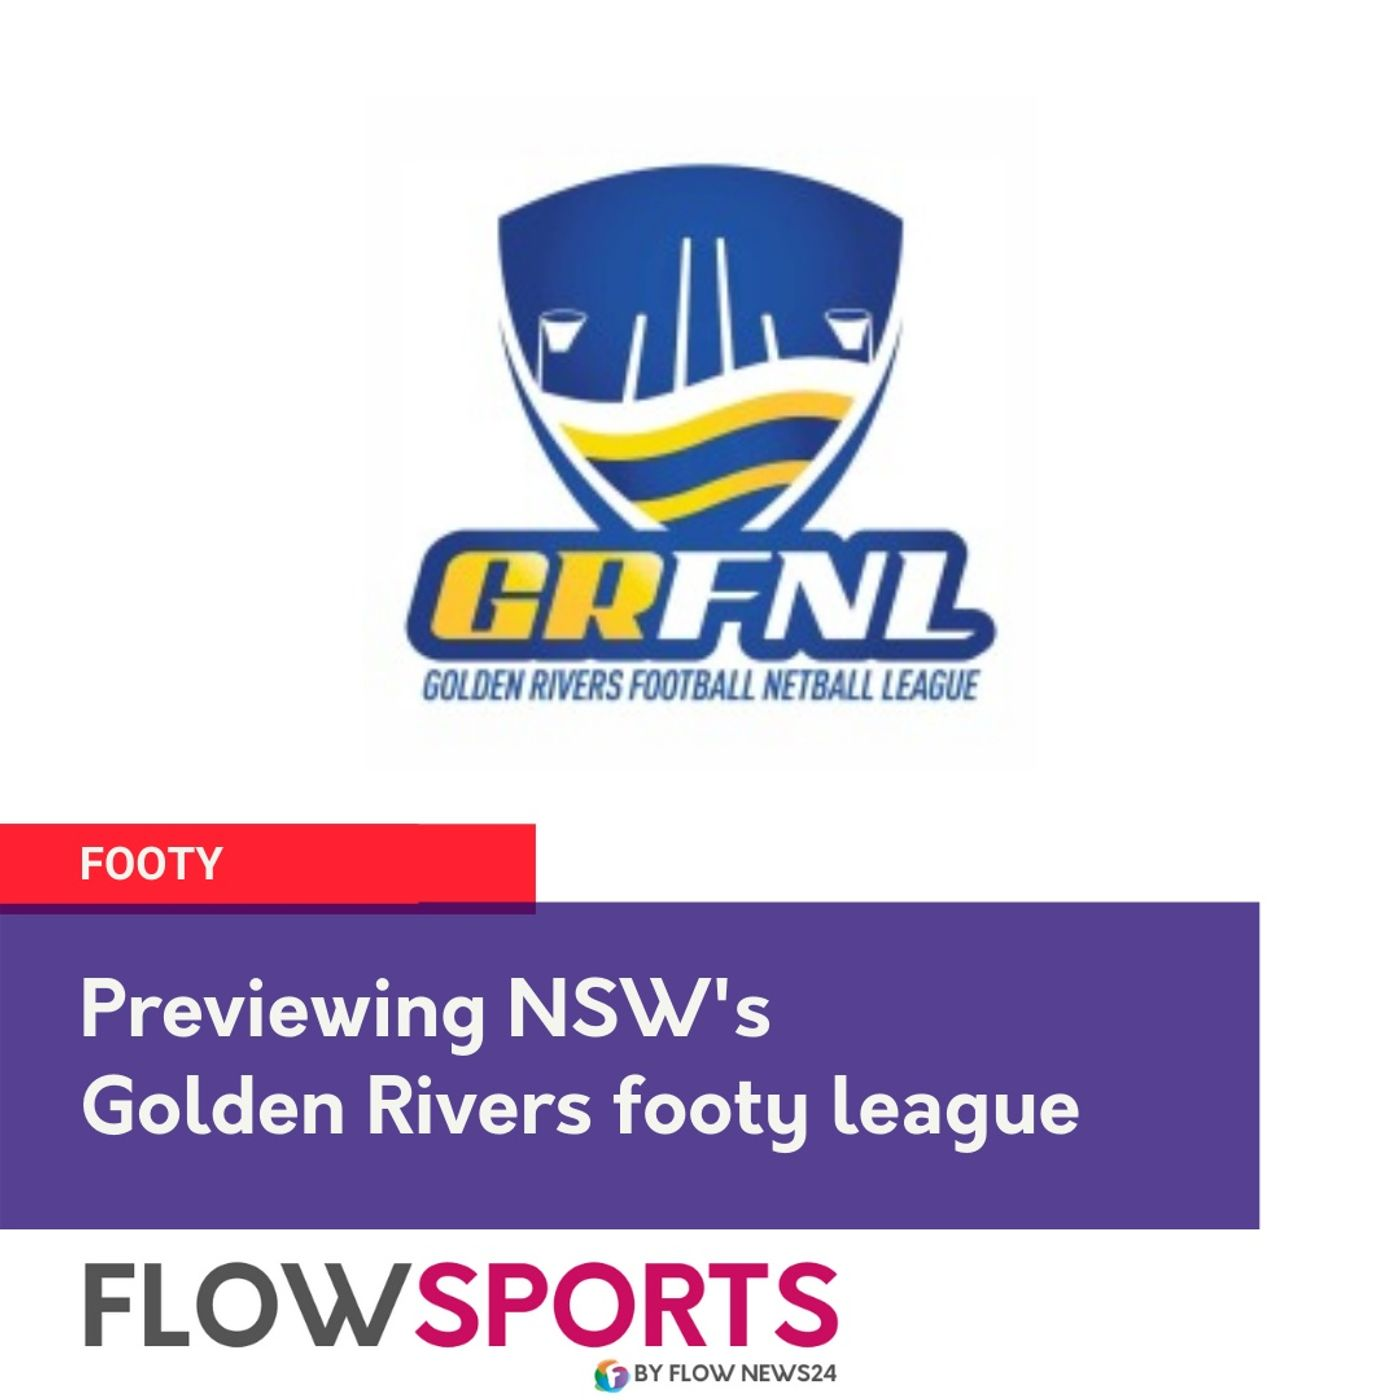 Wayne 'Flowman' Phillips reviews Golden Rivers Footy including Seniors, Reserves and U17.5 competitions